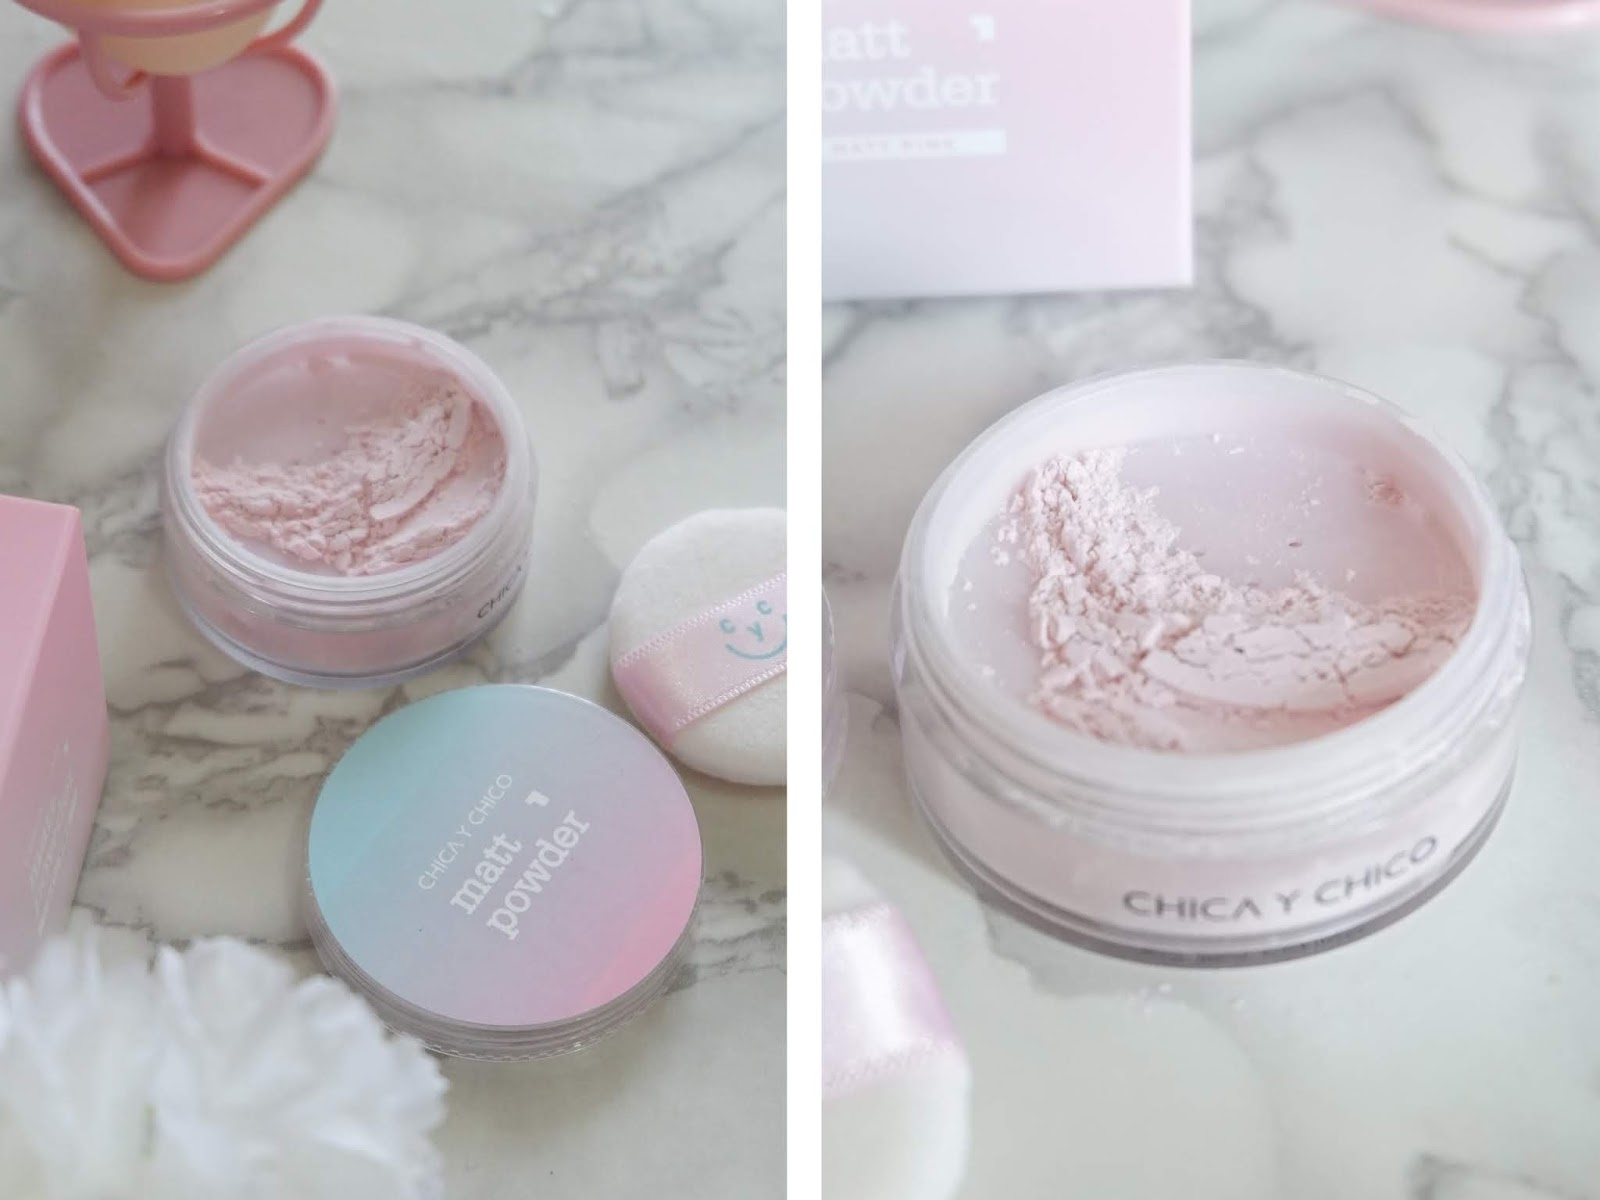 CHICA Y CHICO MATT PINK POWDER REVIEW